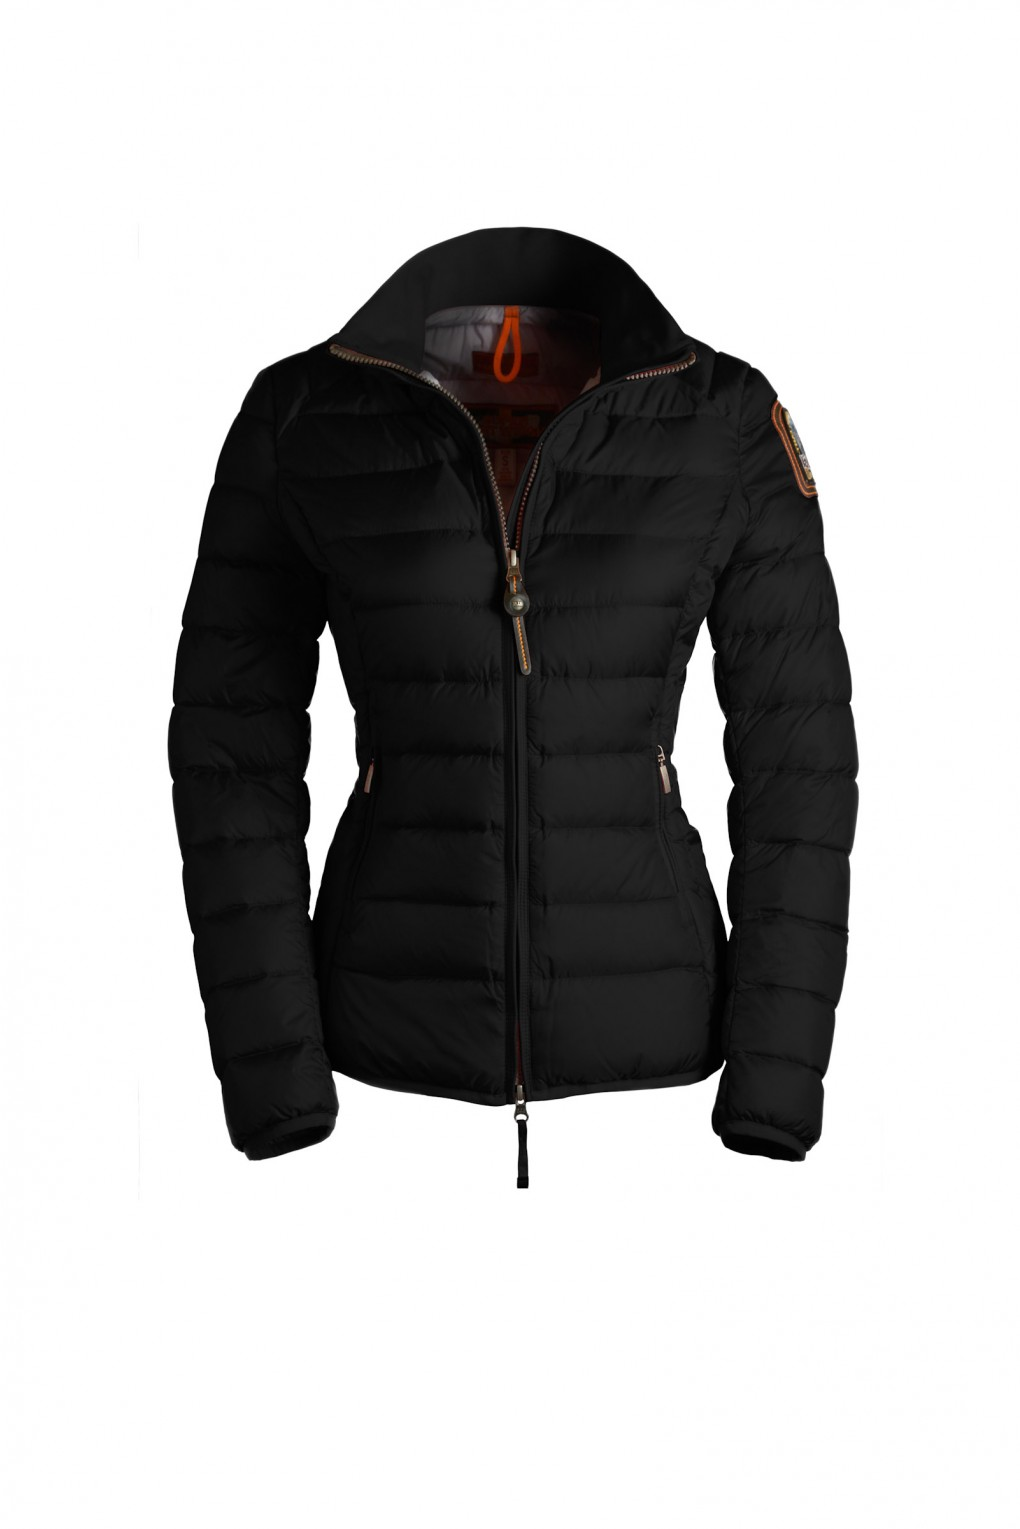 parajumpers GEENA 6 woman outerwear Black